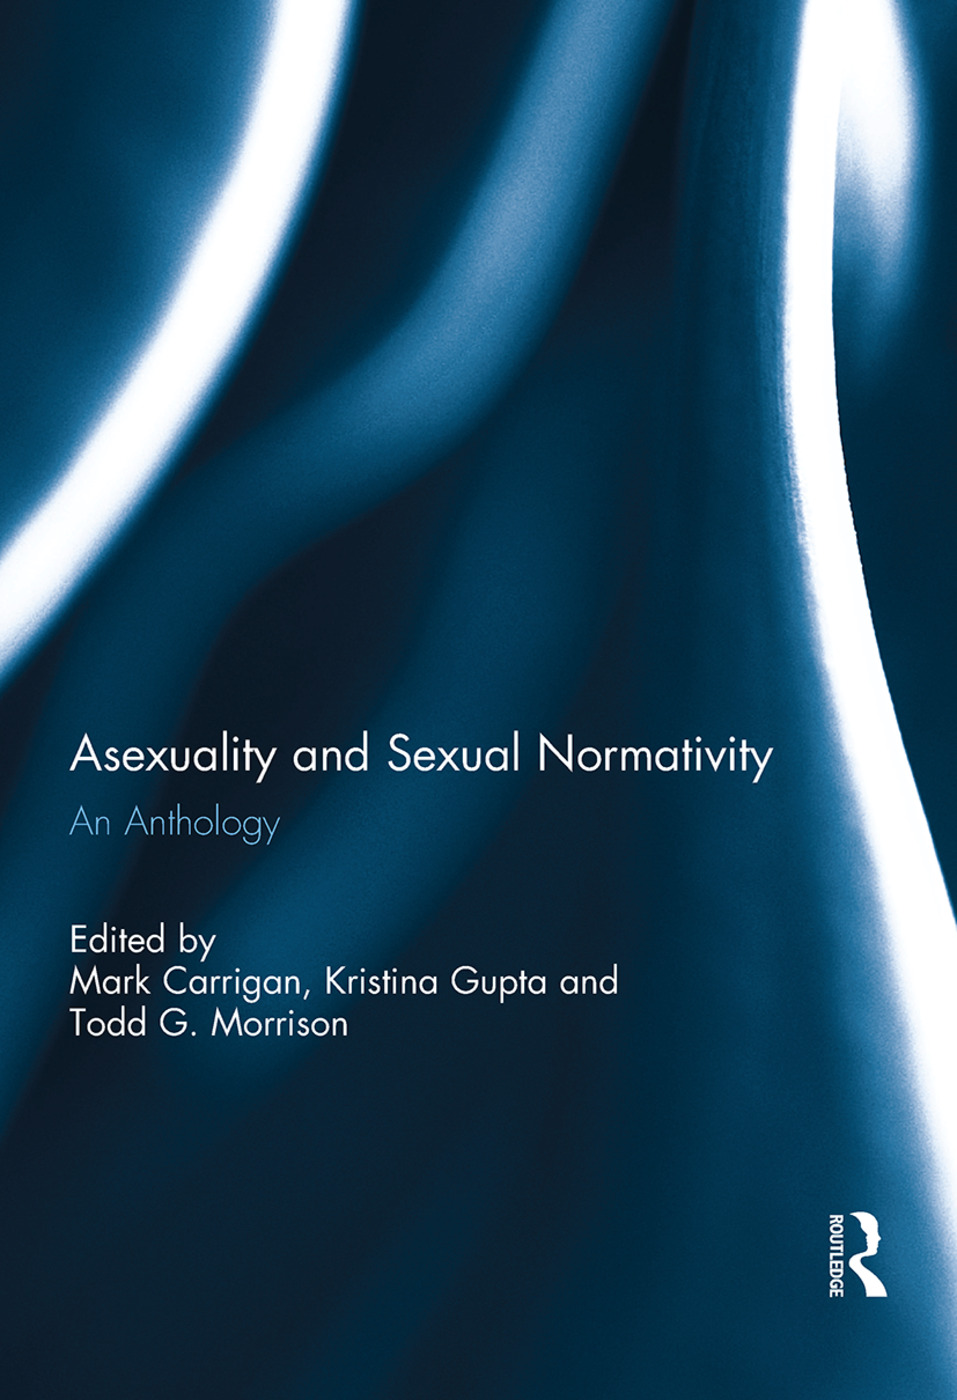 Asexuality and Sexual Normativity: An Anthology book cover